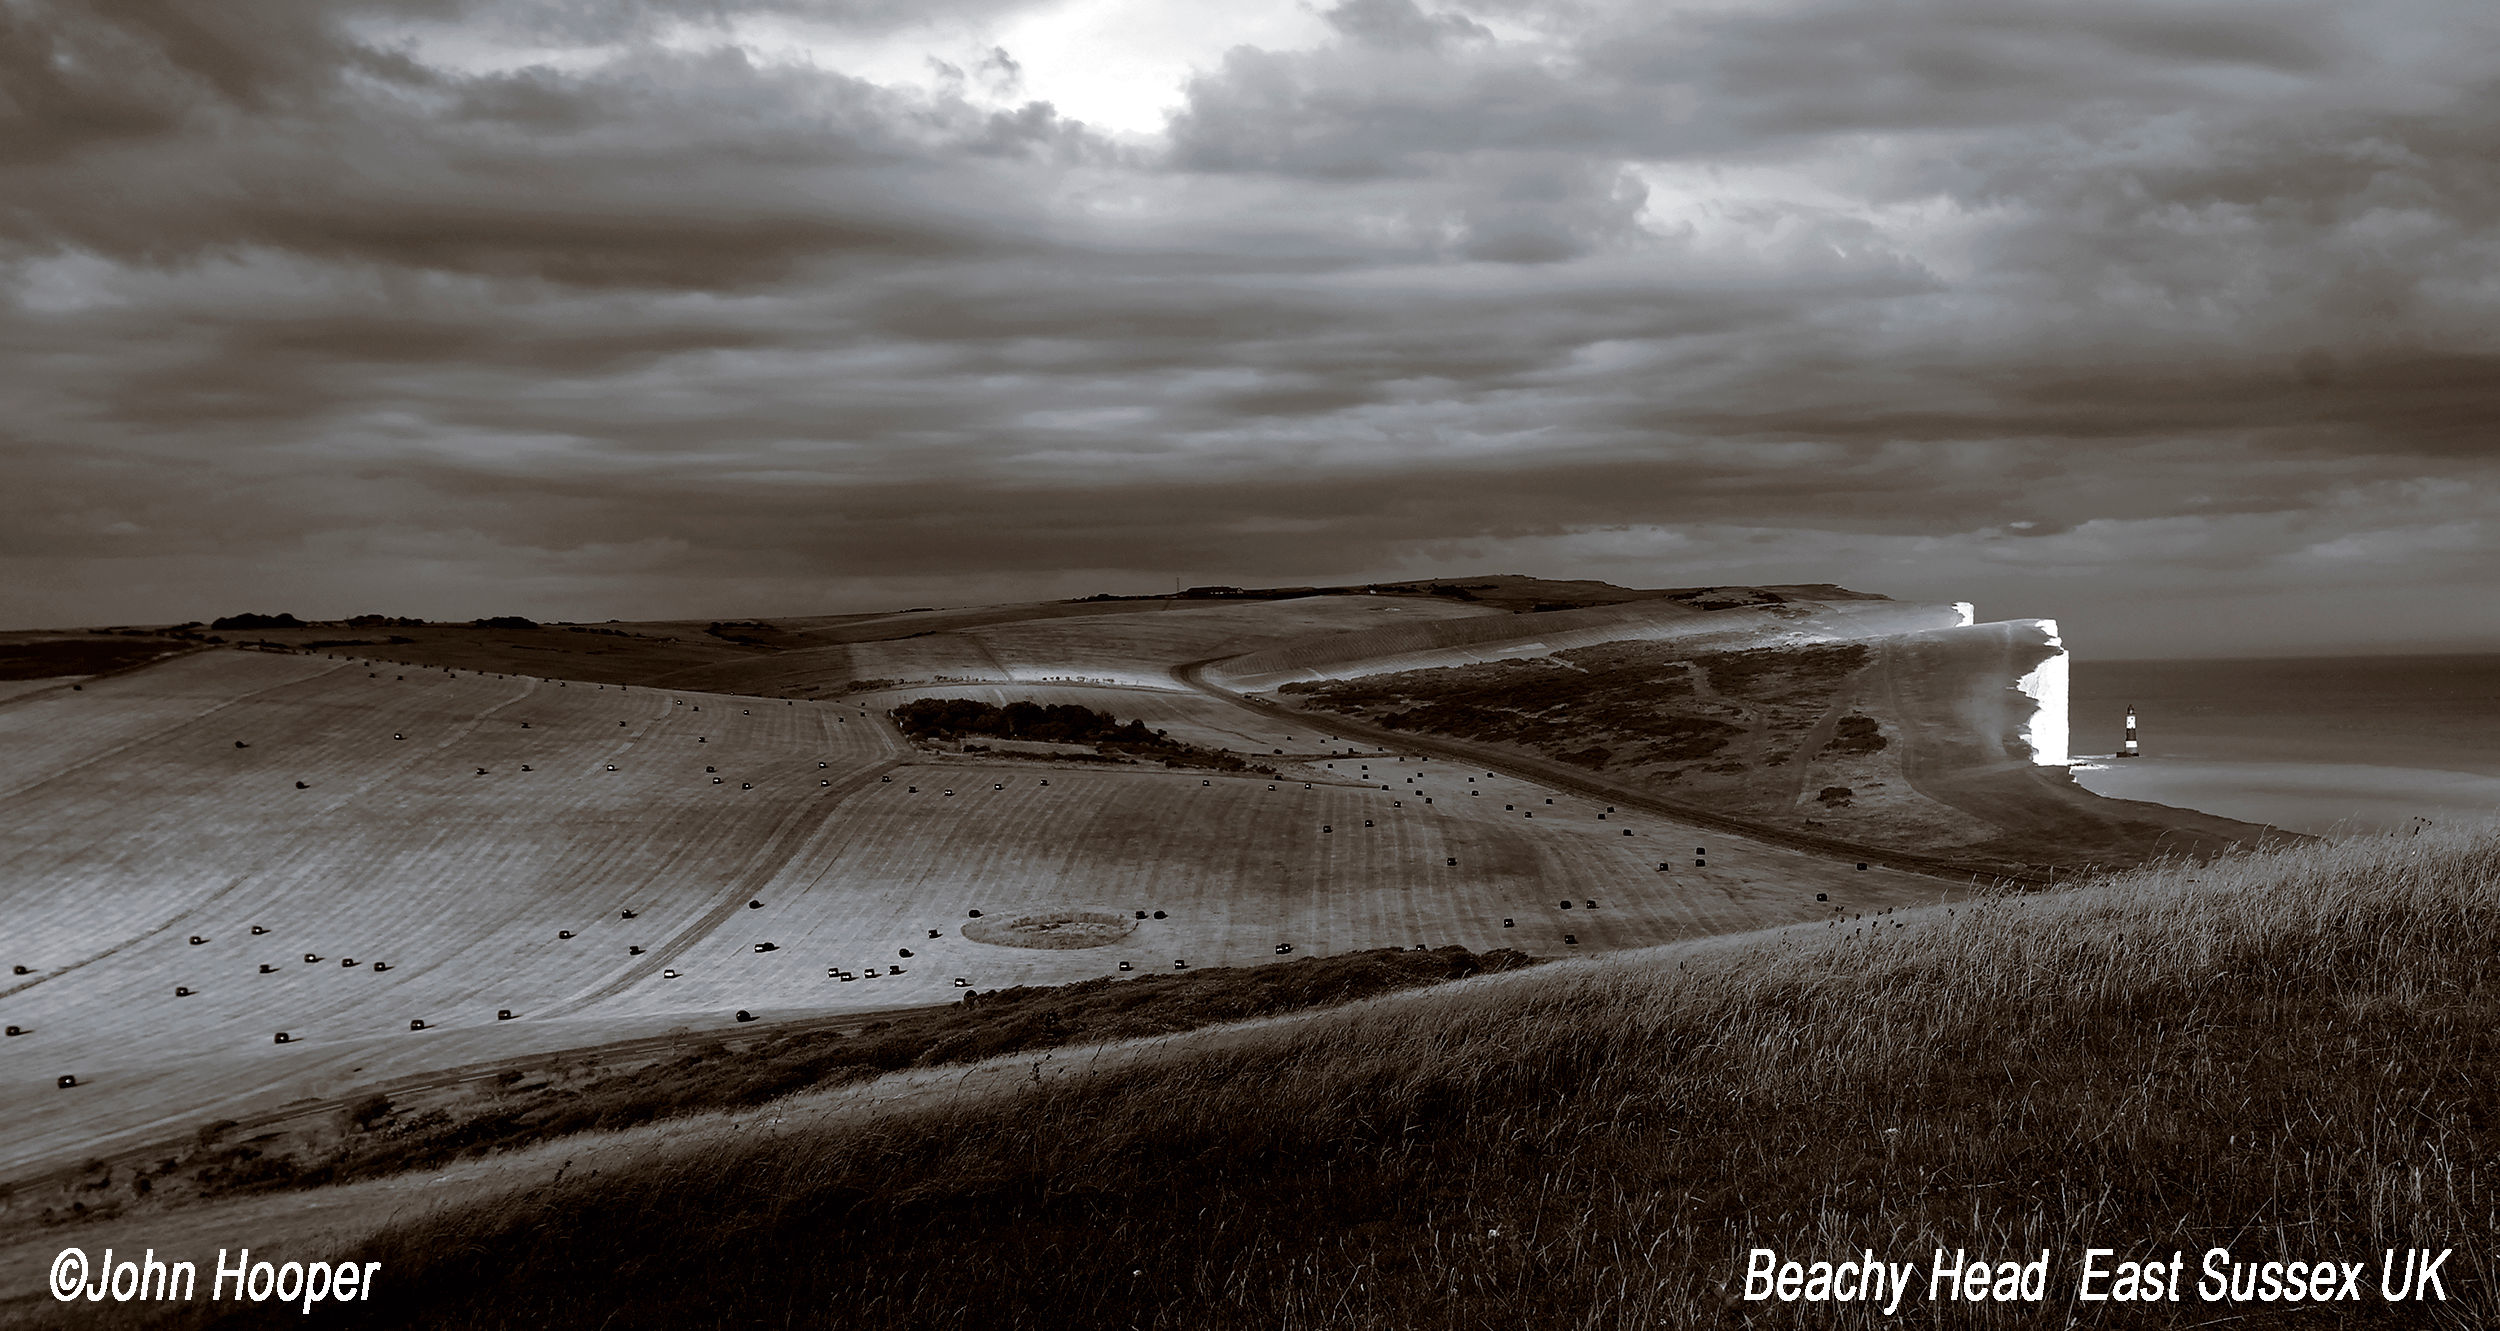 Baechy Head, East Sussex